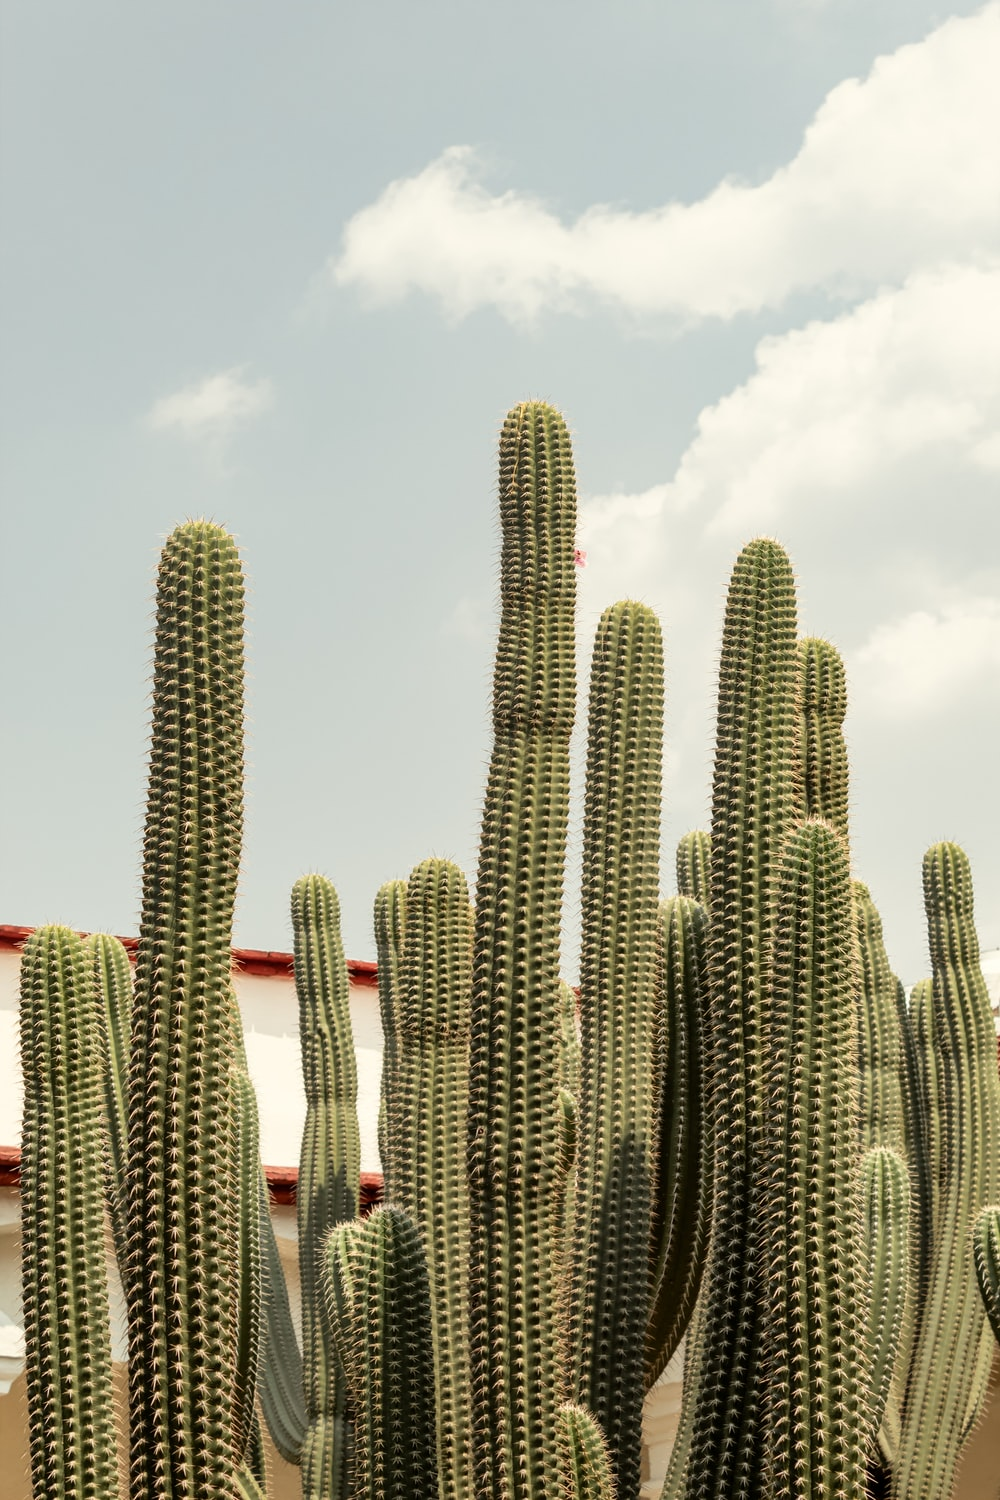 green cacti during daytime